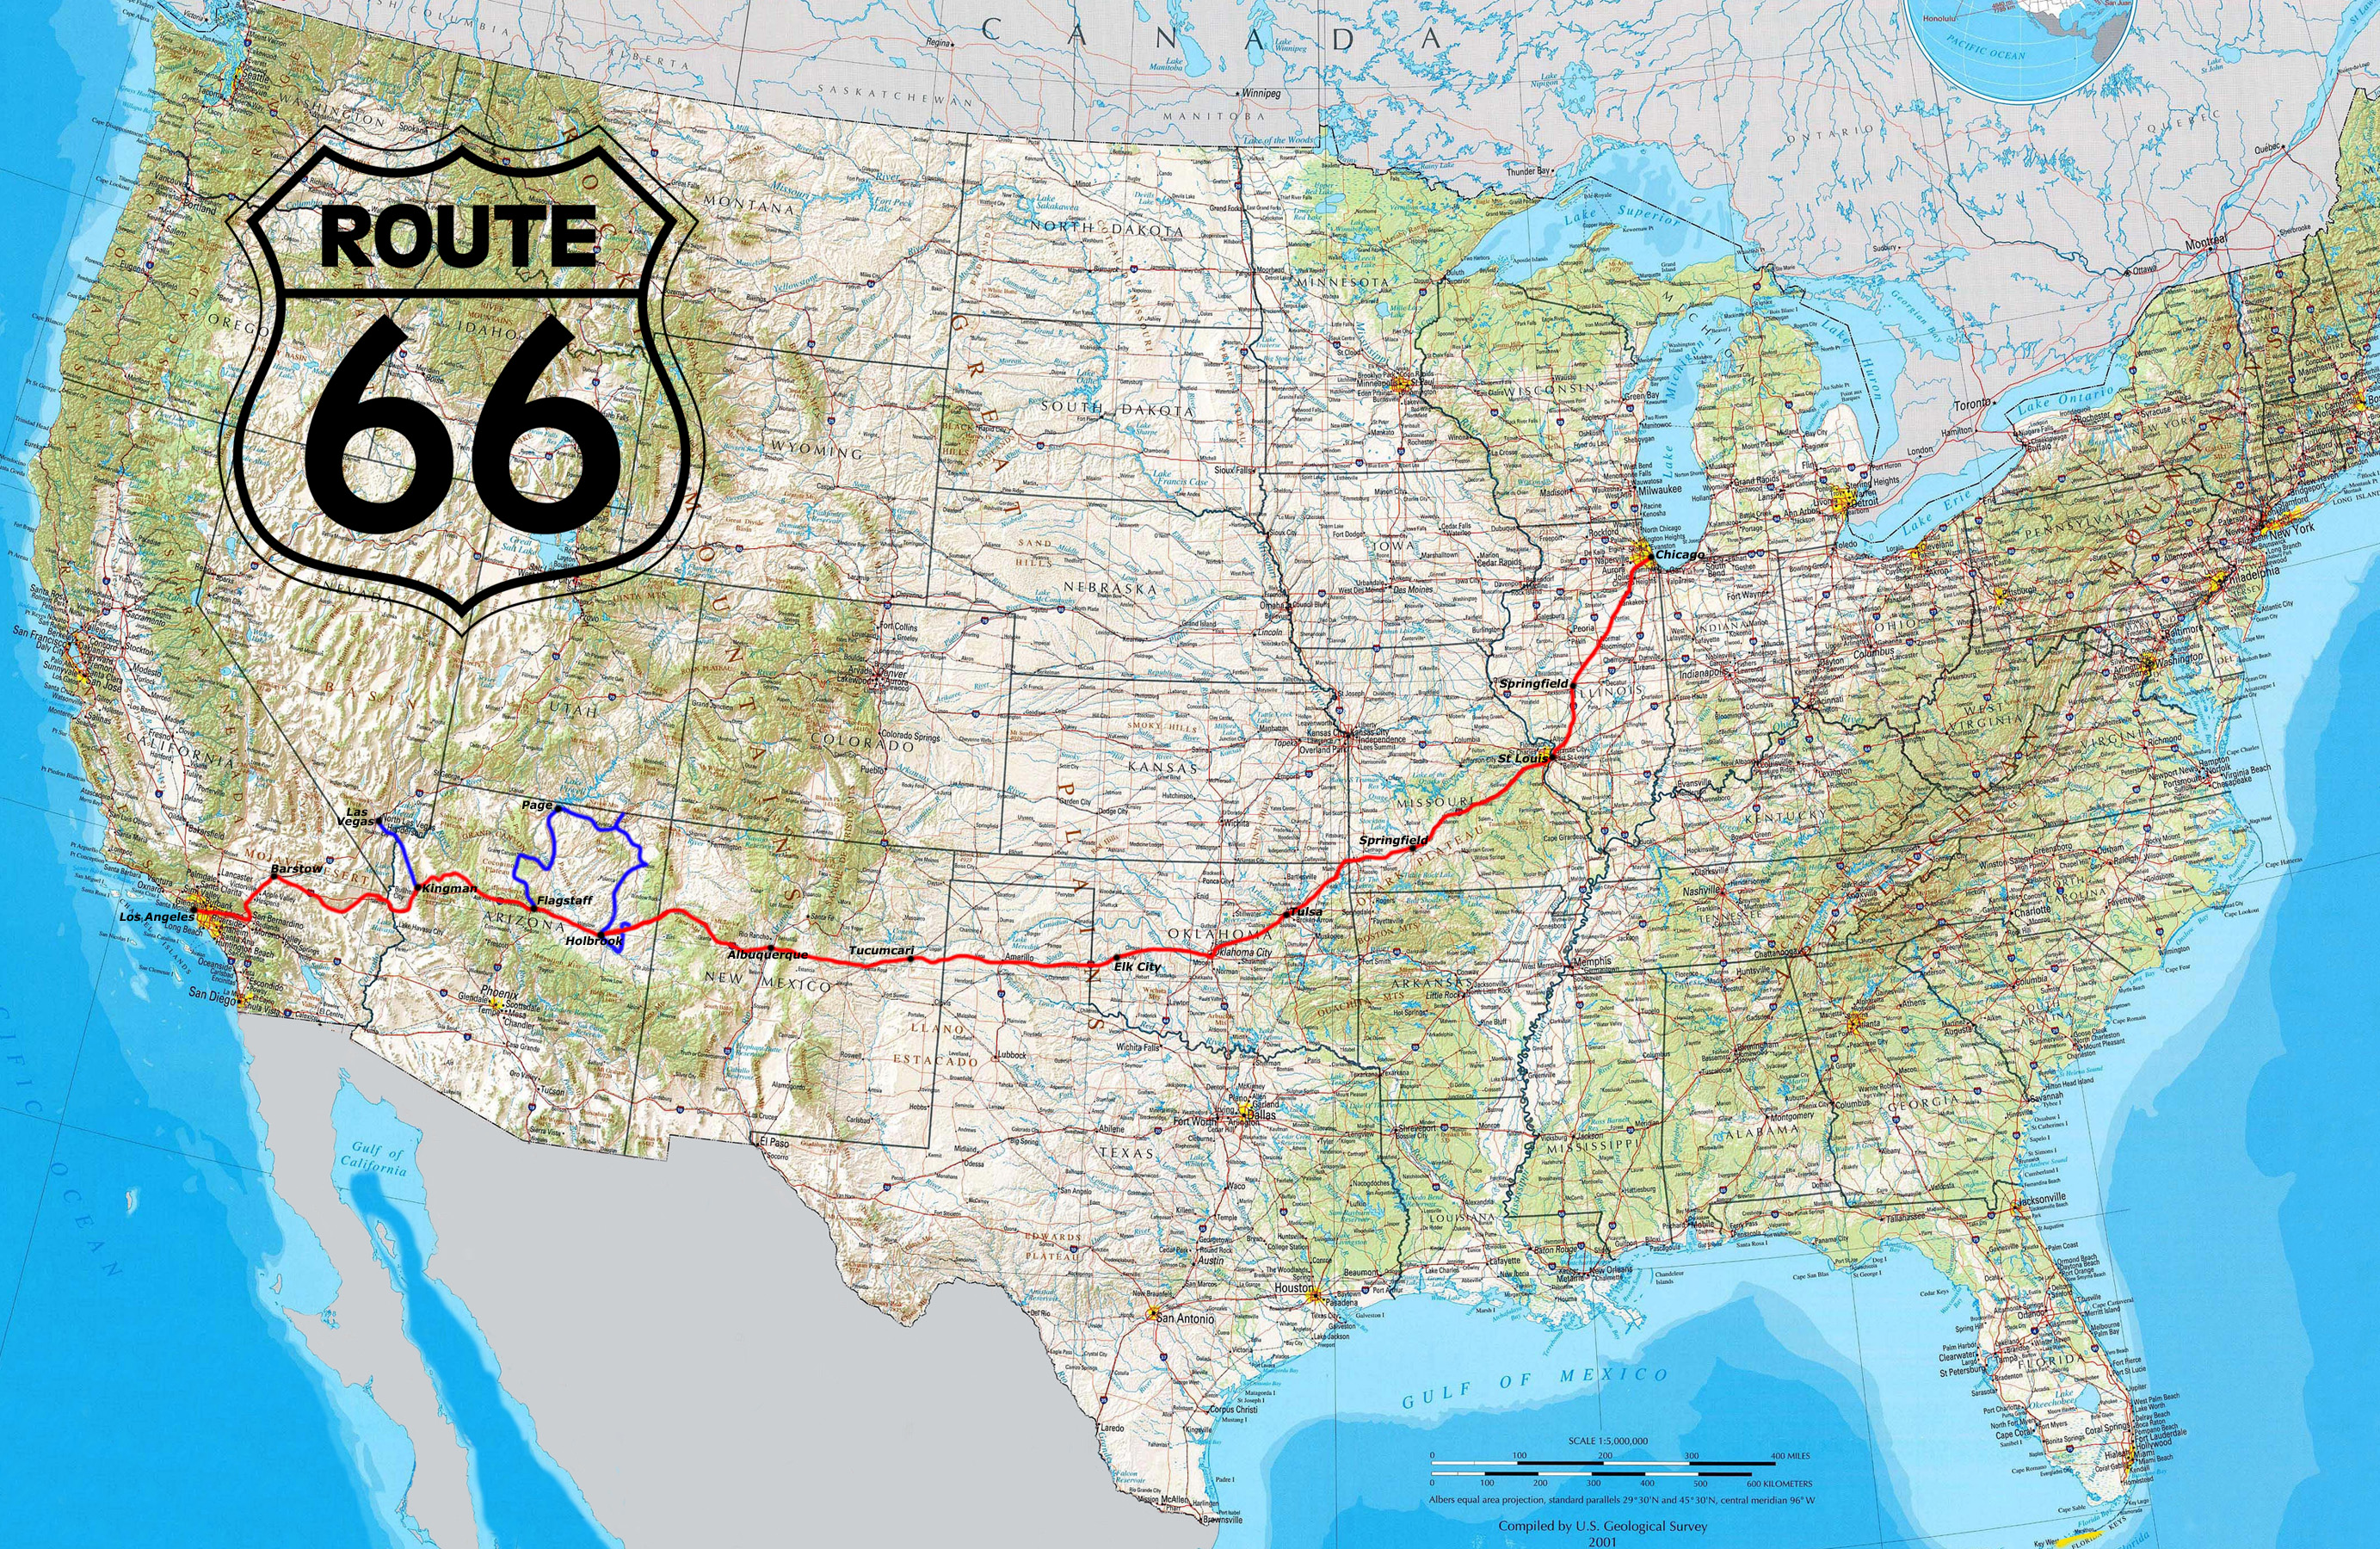 Detailed Route 66 Map >> Route 66 Map Wallpaper - WallpaperSafari